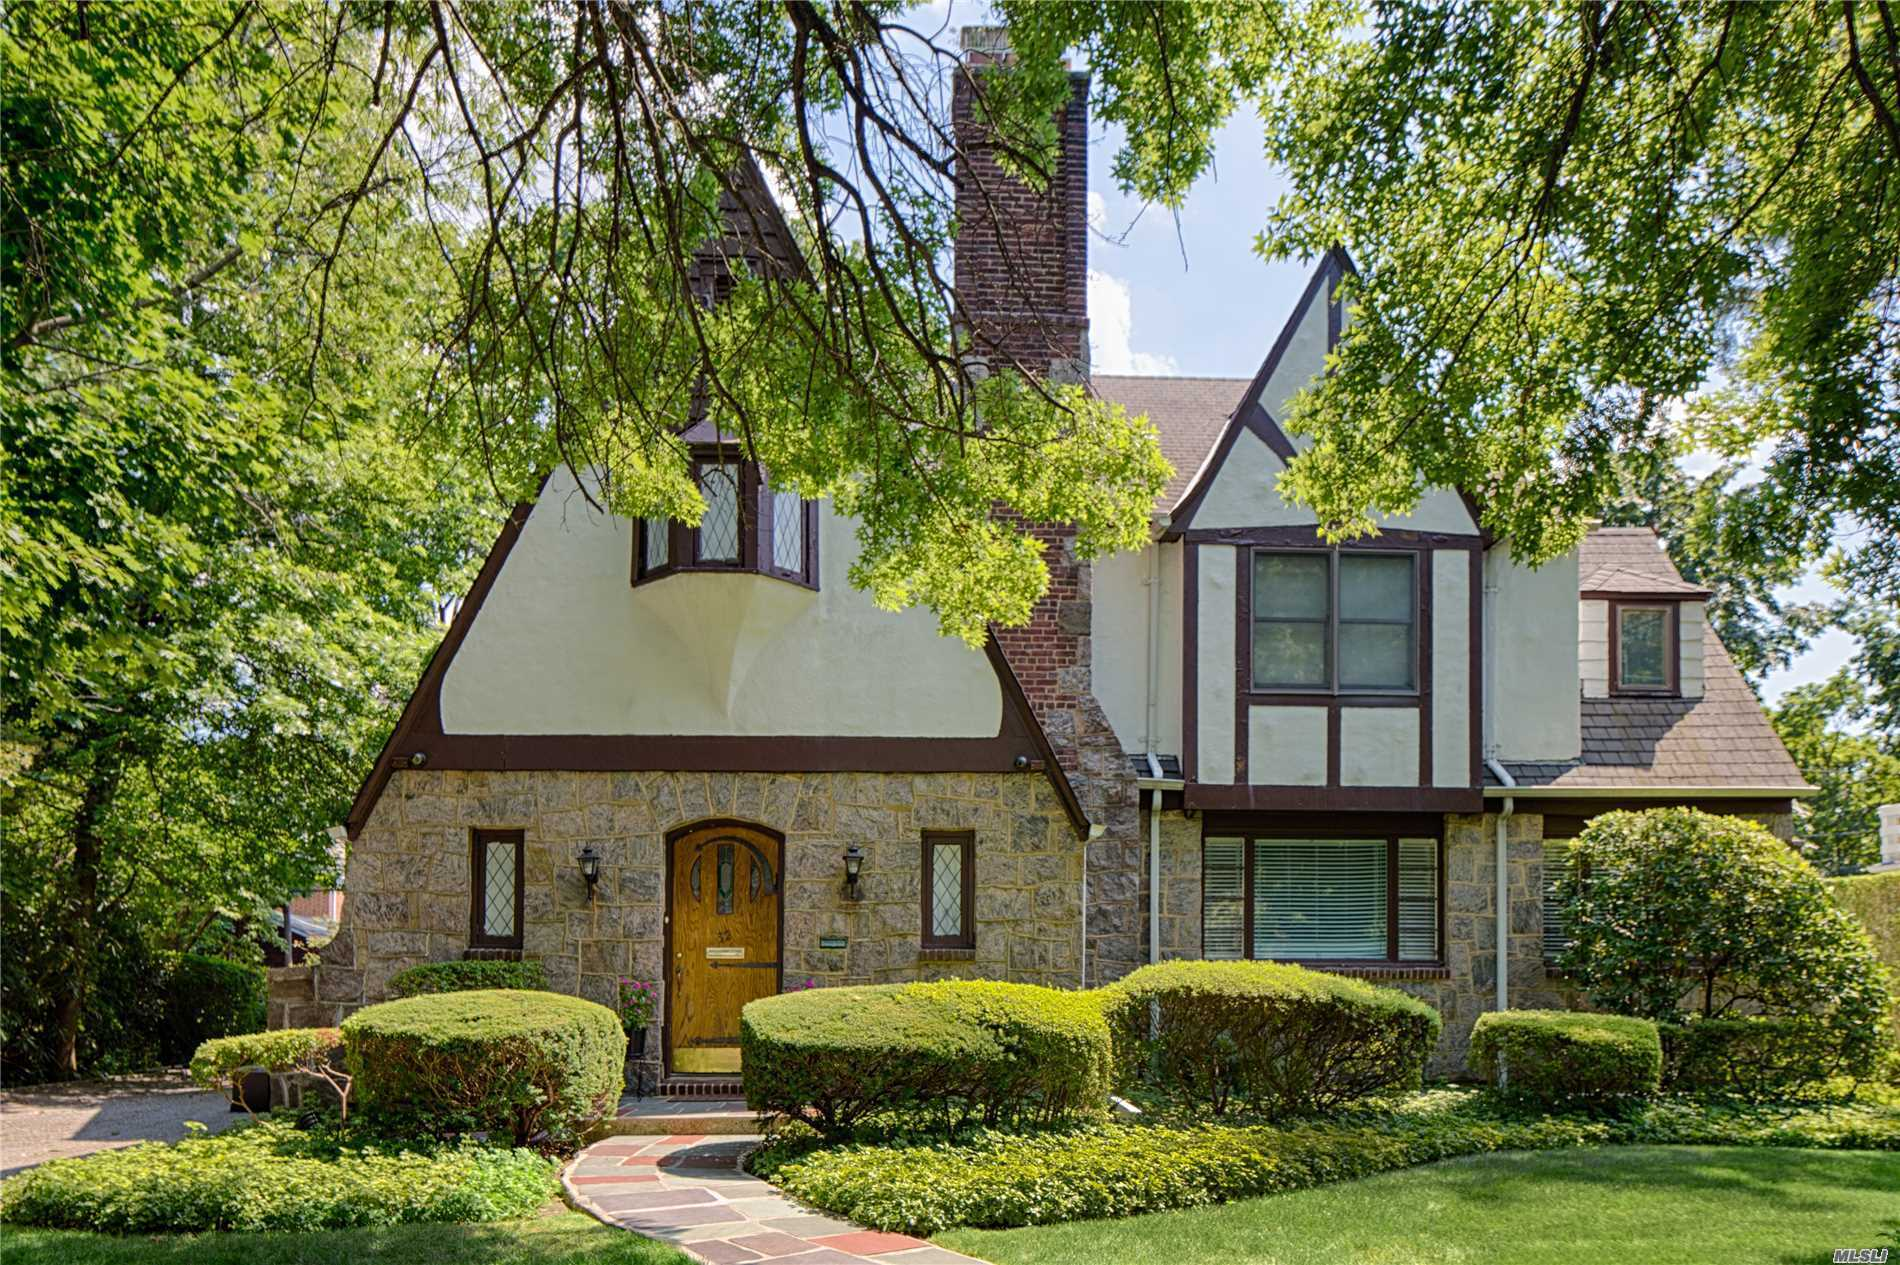 Large Gracious, Charming Tudor Made Of Stone And Stucco W/Oversized Rooms. Perfect For Entertaining And Ideally Located Close To Town, Lirr,  Shopping And Parks. The Village Of Kensington Is Special And Unique With Private Police, Pool, Sidewalks, And Great Neck Park District Privileges. Em Baker Elementary School And Option Zone.